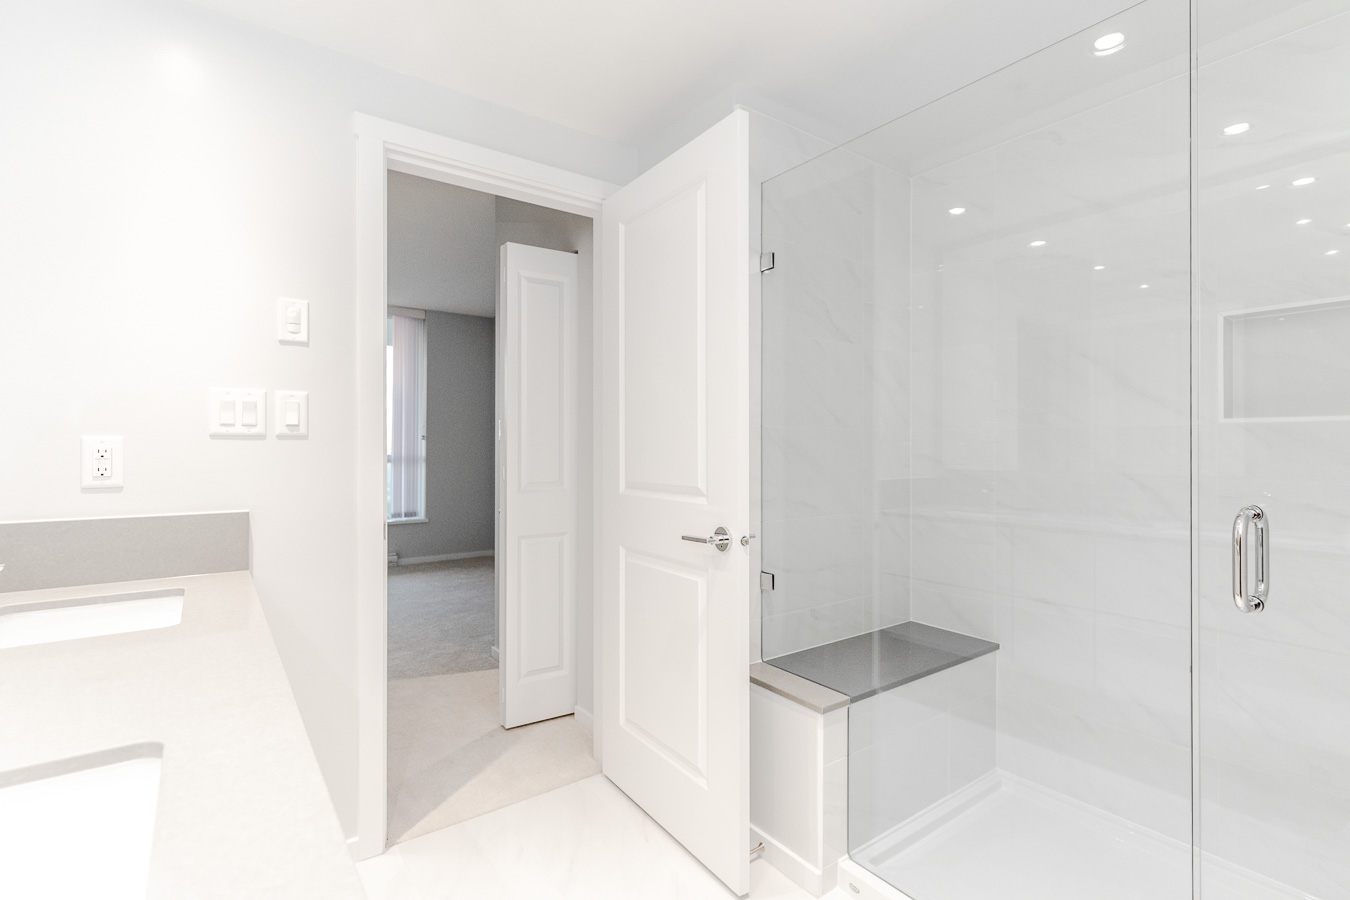 Bathroom with walk-in shower at Metrotown rental condo.